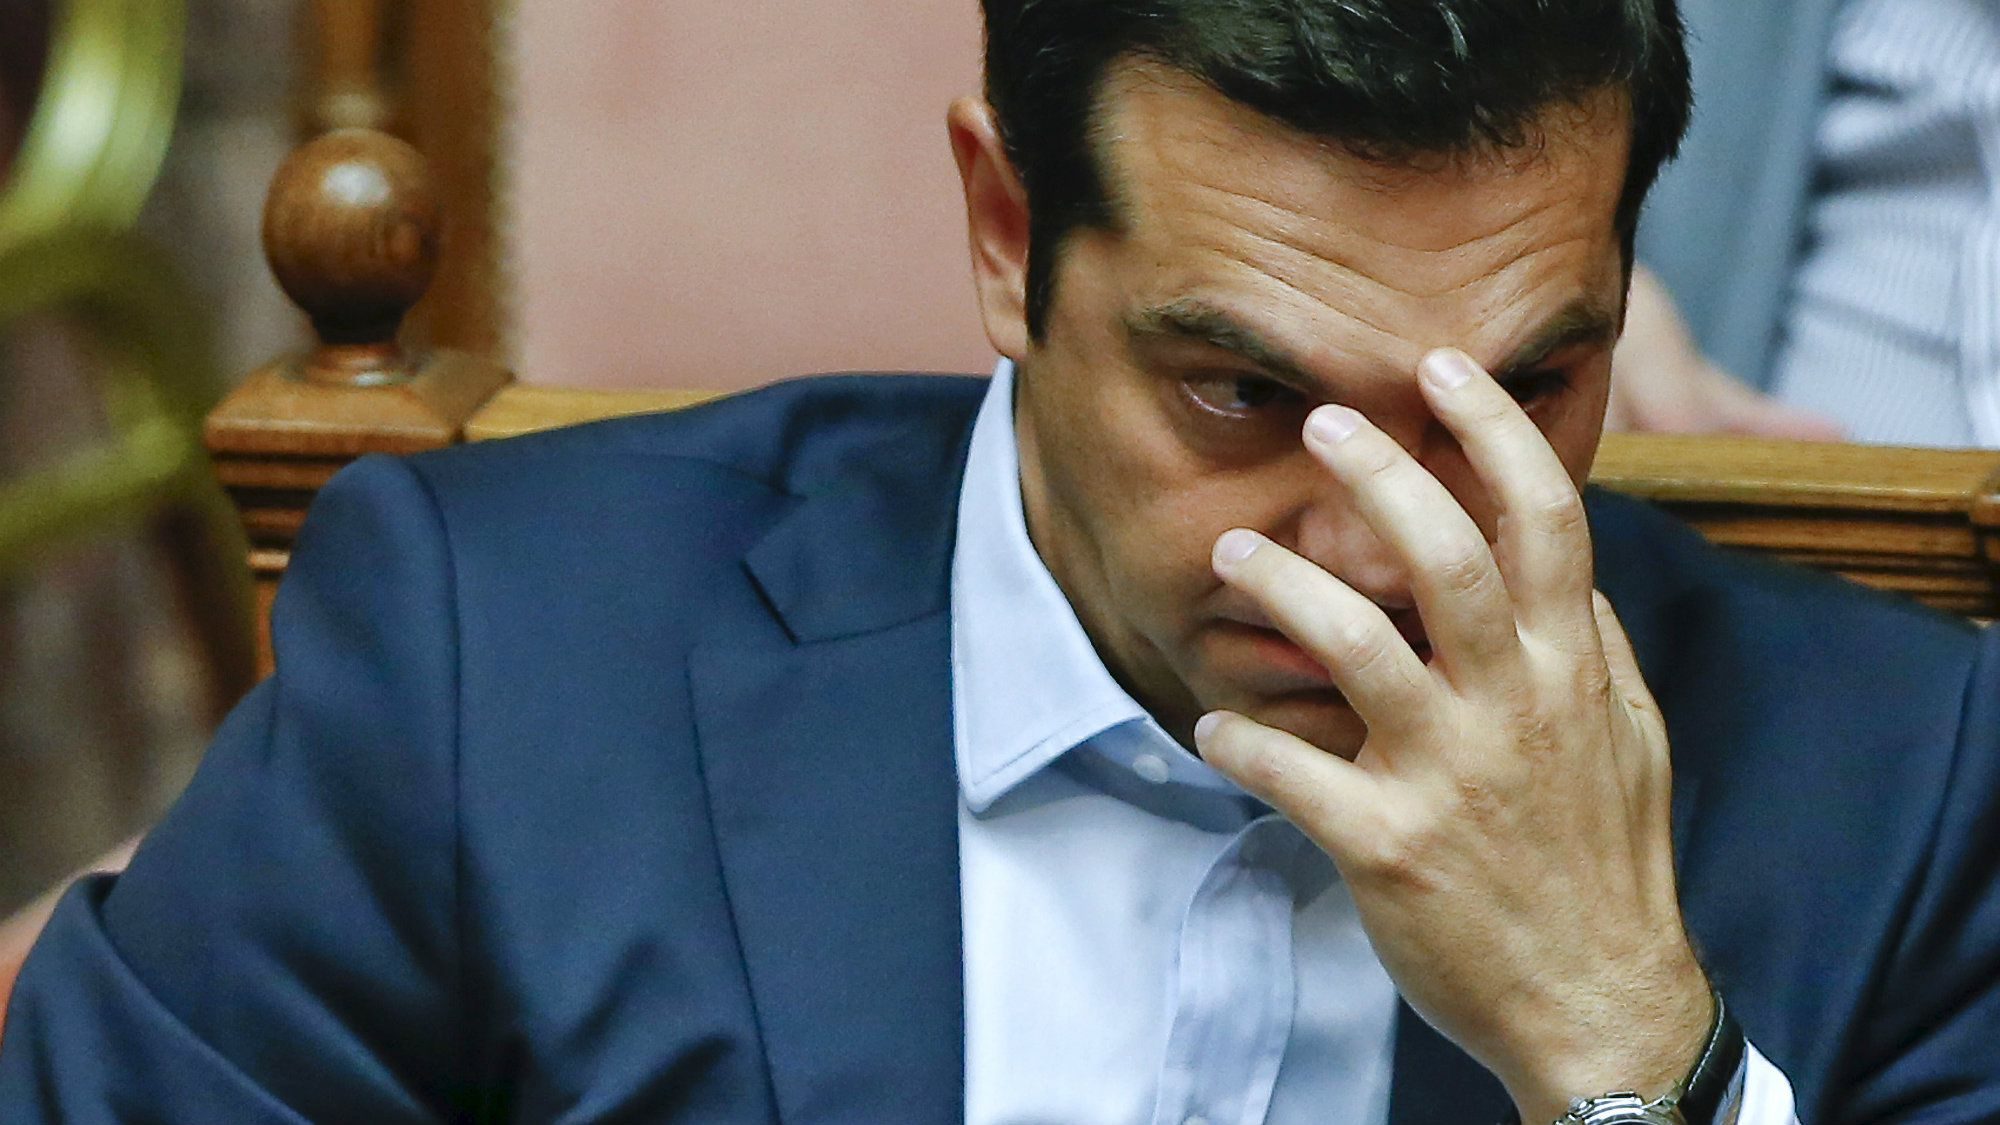 Greek Prime Minister Alexis Tsipras gestures during a parliamentary session in Athens, Greece June 28, 2015.